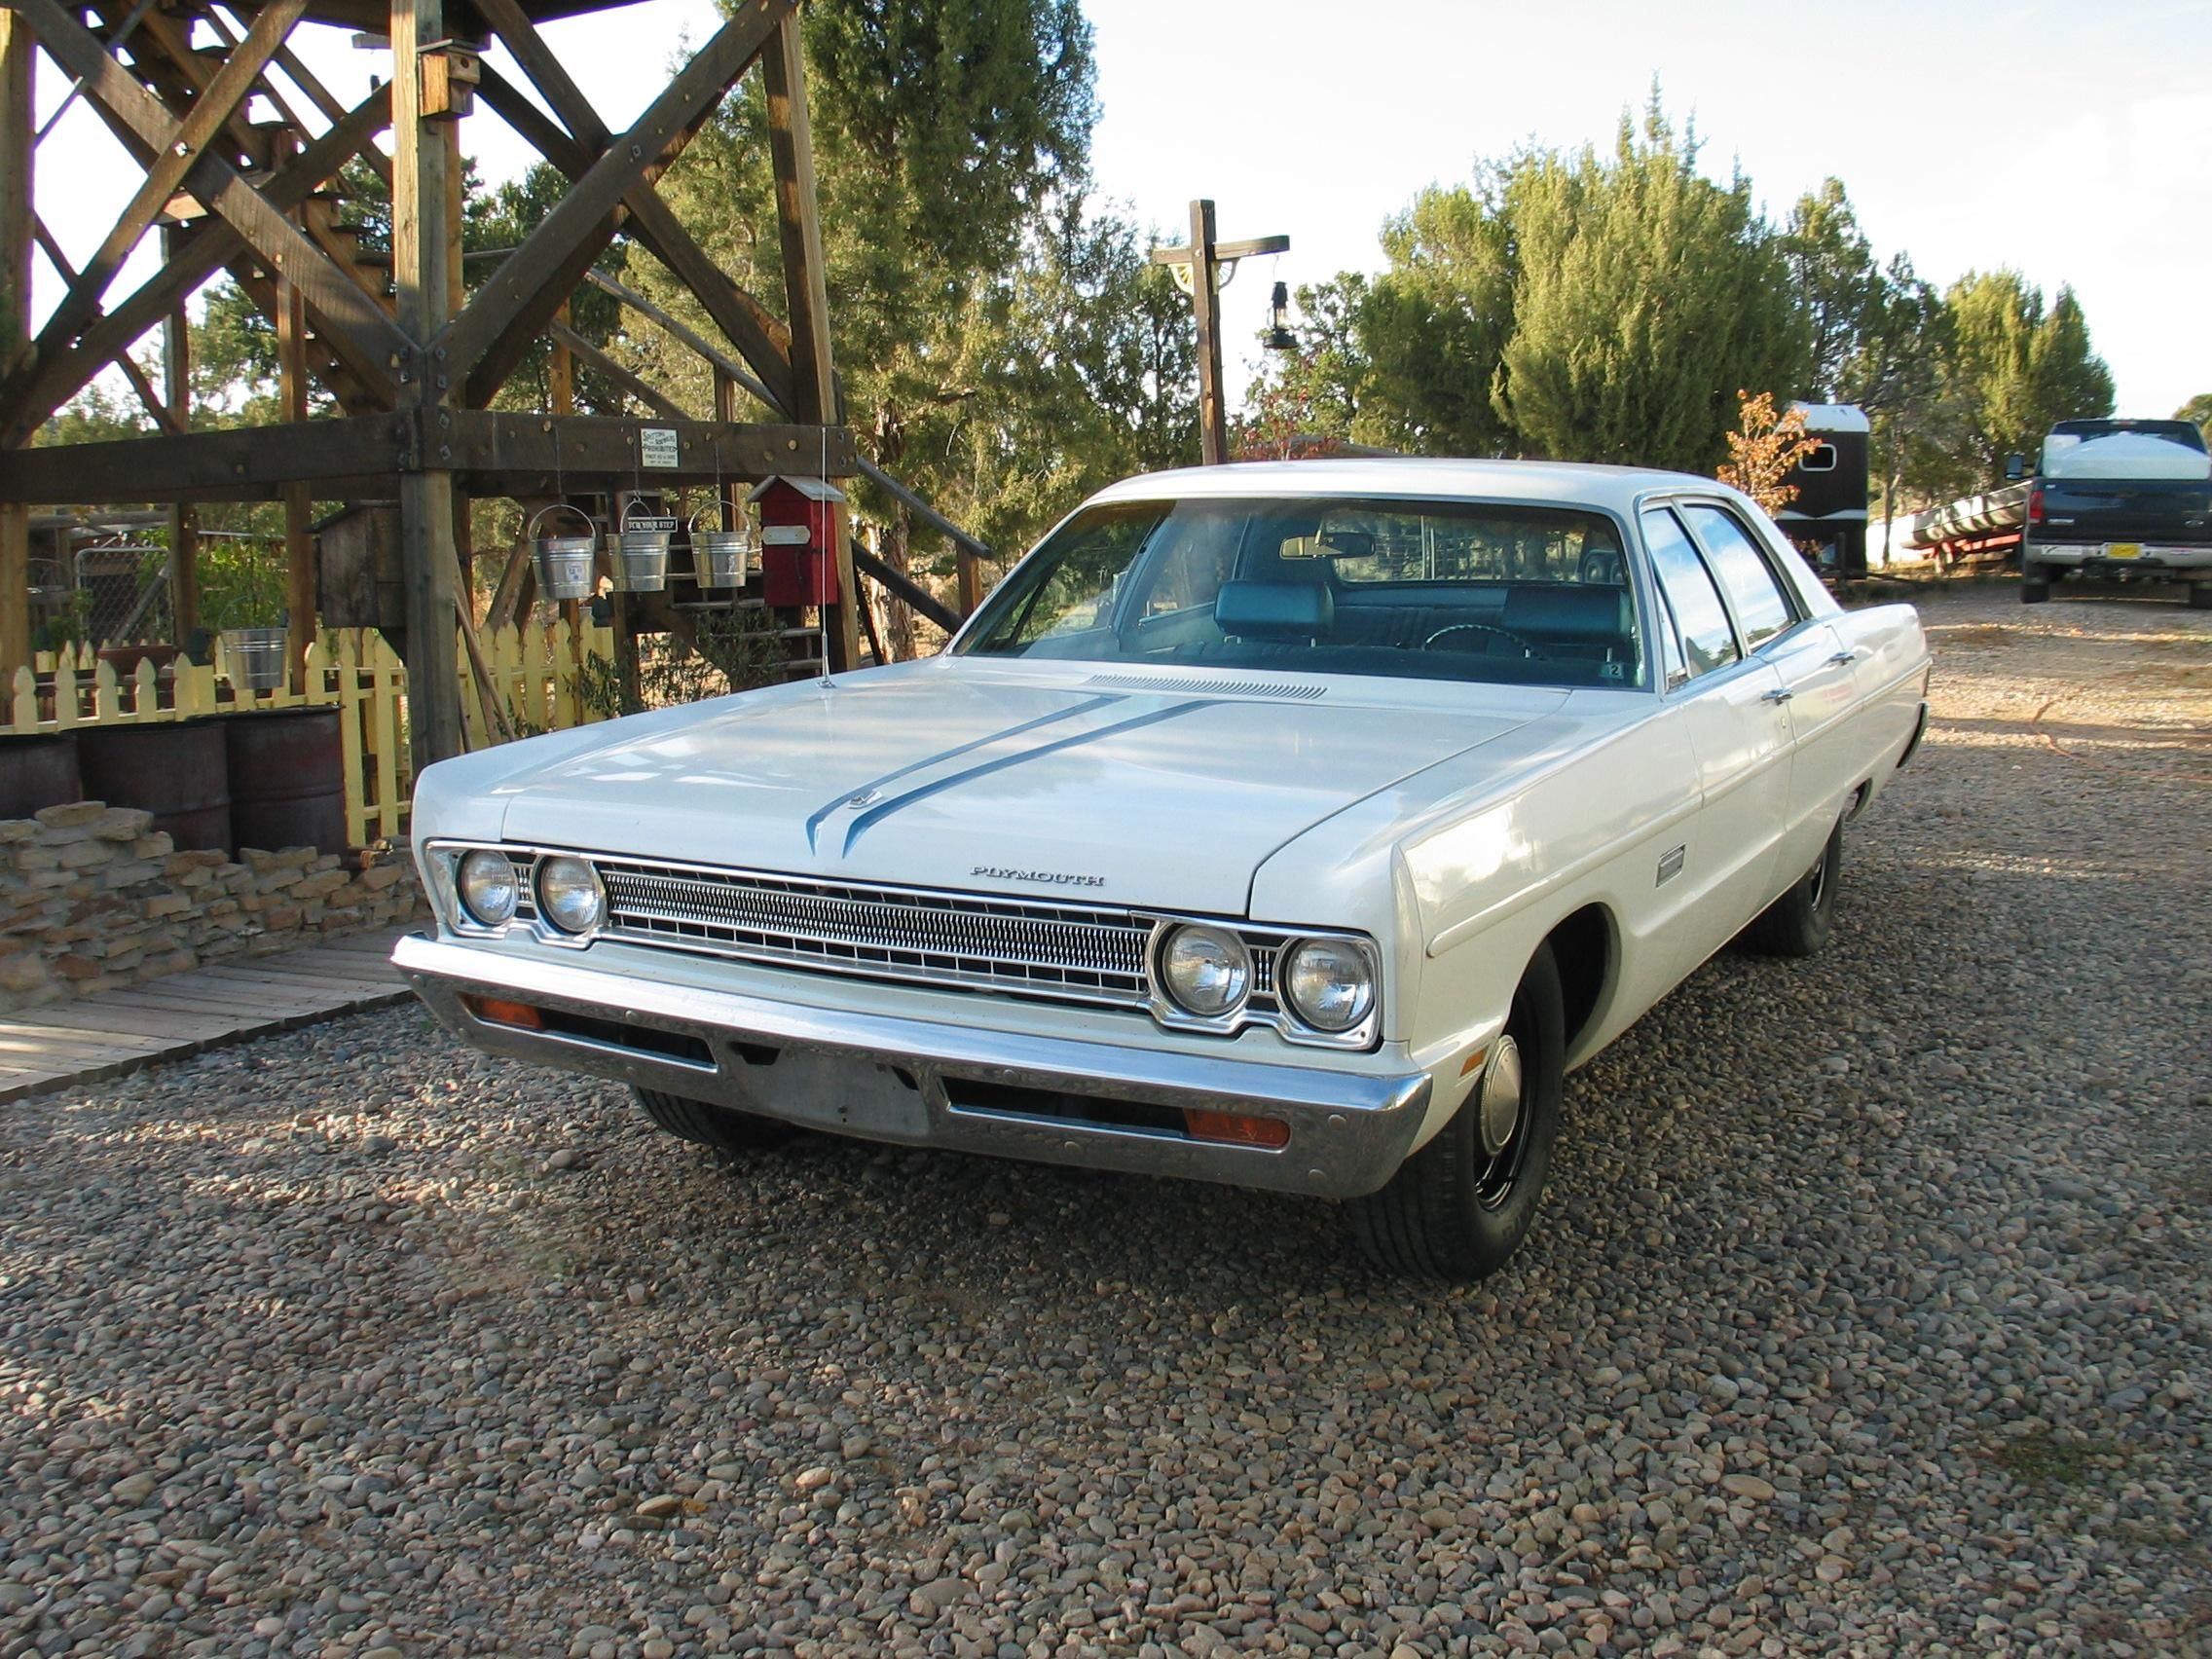 1969 plymouth fury iii photo ArtPlus Digital Photo Recovery - Free download and software reviews